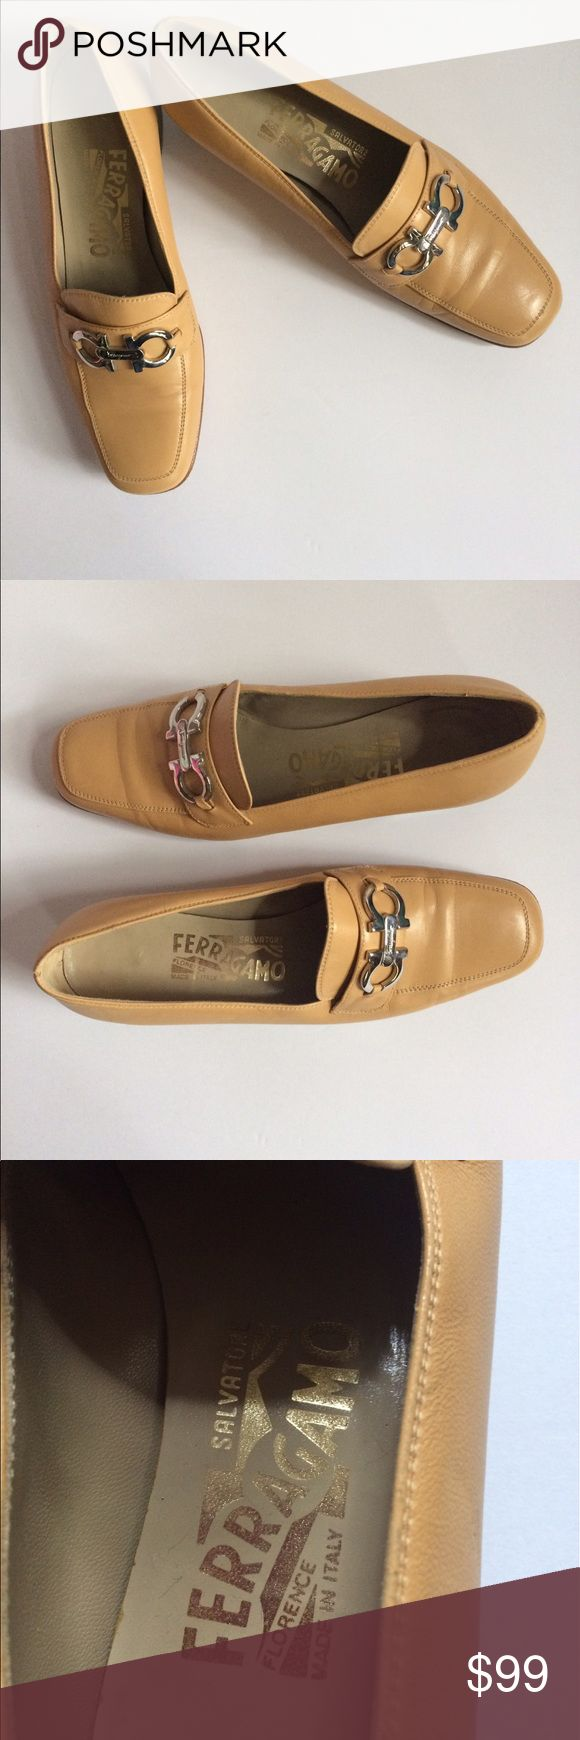 Ferragamo Leather Bit Loafers size 5.5 Beautiful Ferragamo Leather Loafers, signature hardware, leather lining  A staple shoe in everybody's closet. Ferragamo Shoes Flats & Loafers